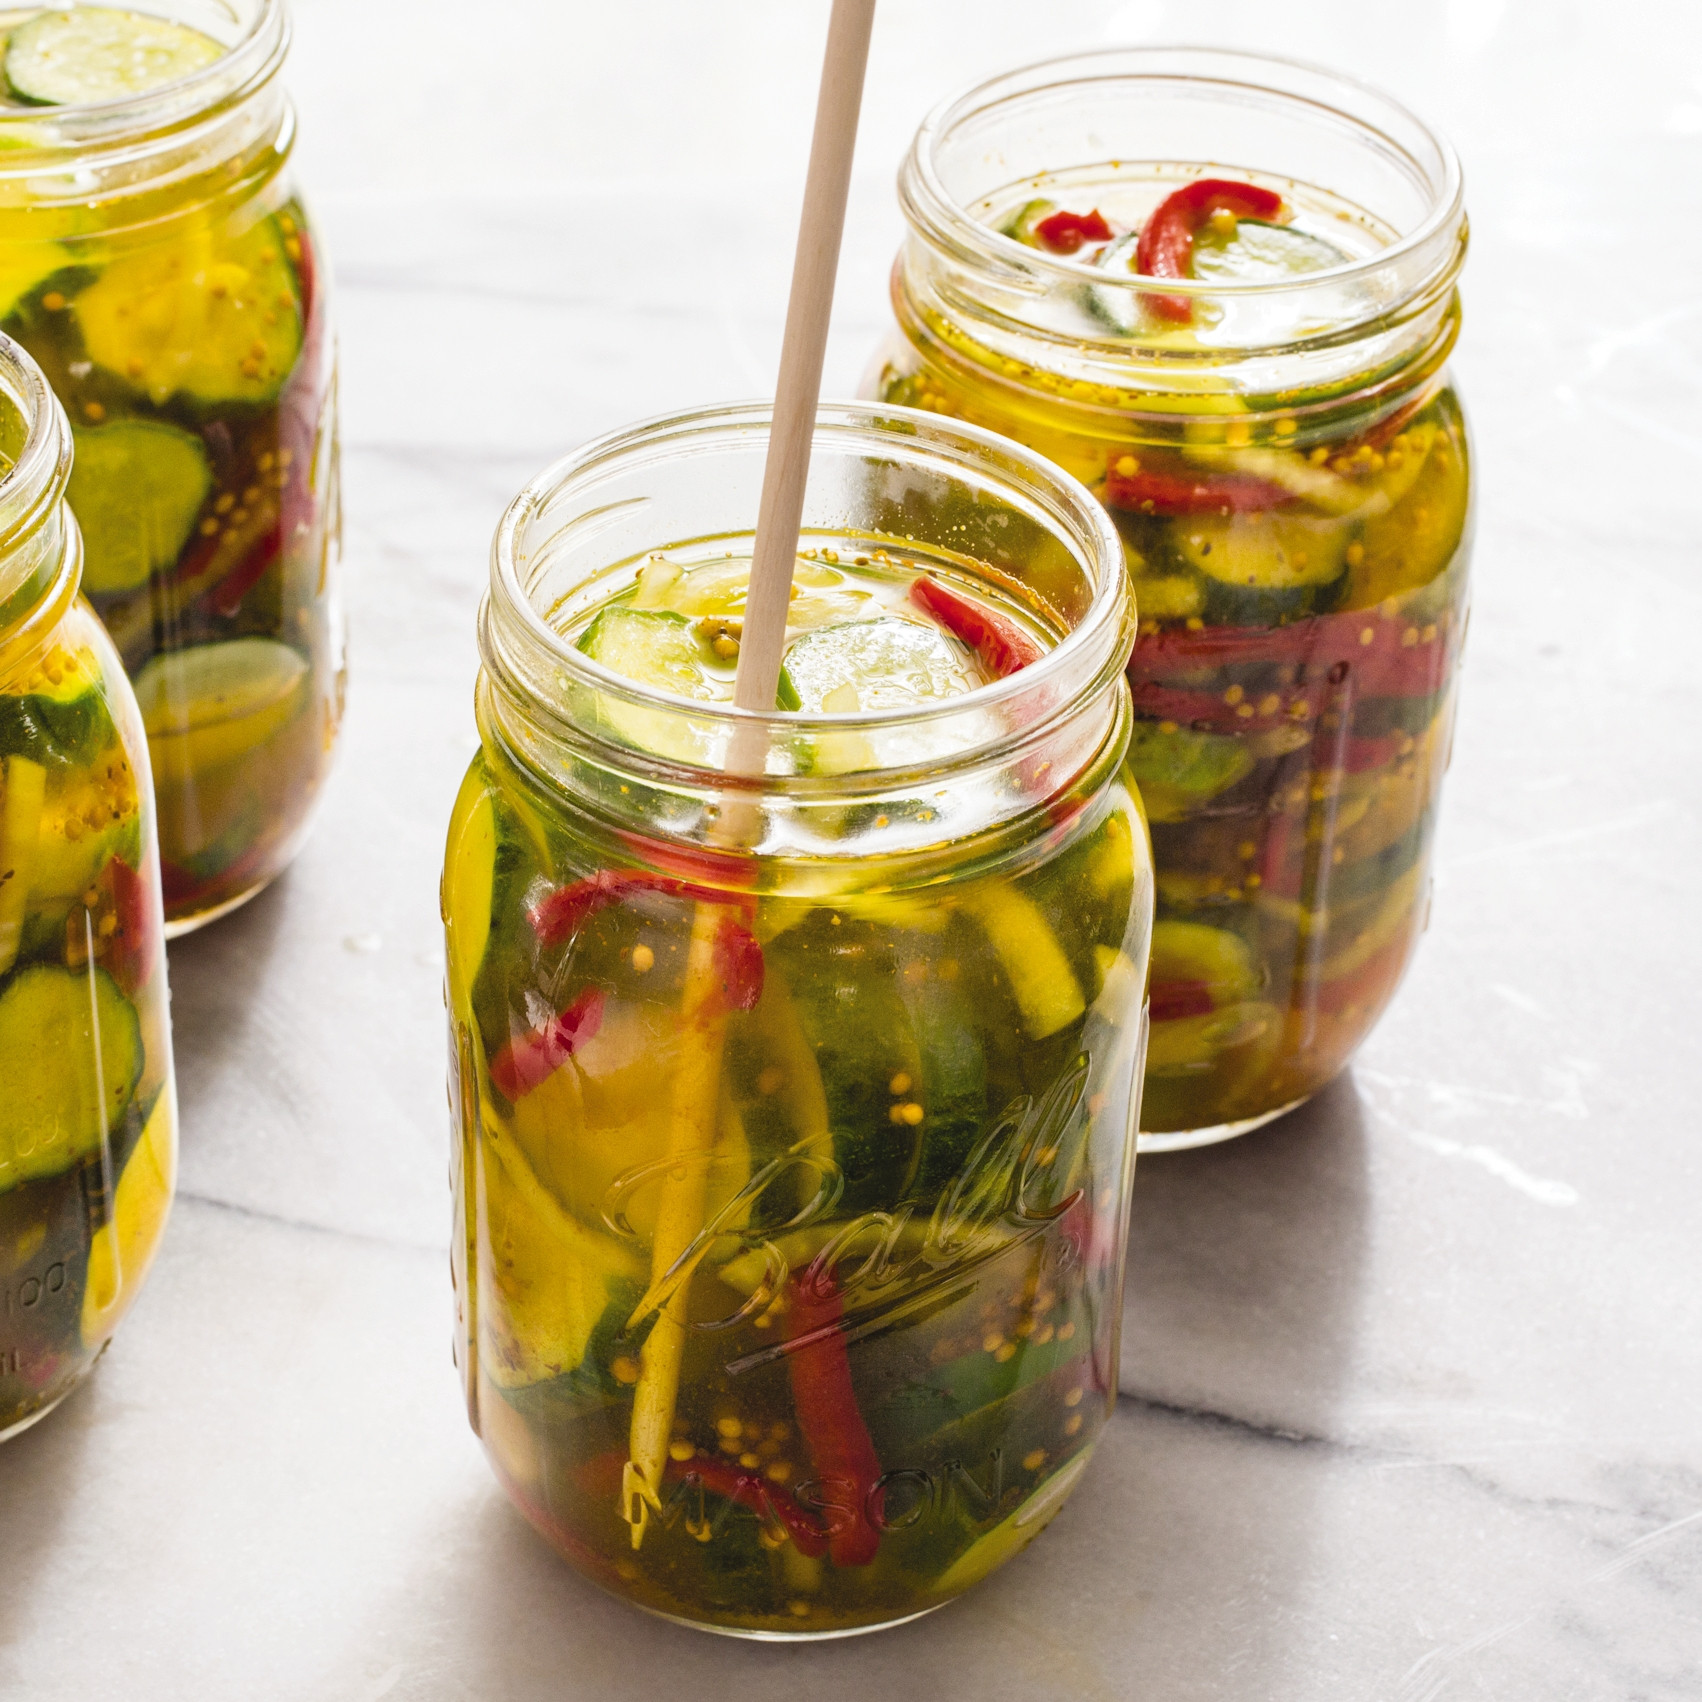 Bread And Butter Pickle Recipes  Bread and Butter Pickles